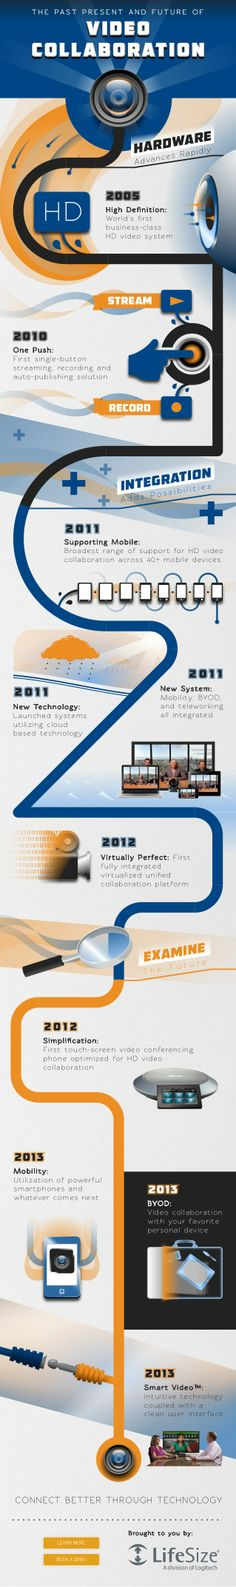 The Past Present and Future of Video Collaboration